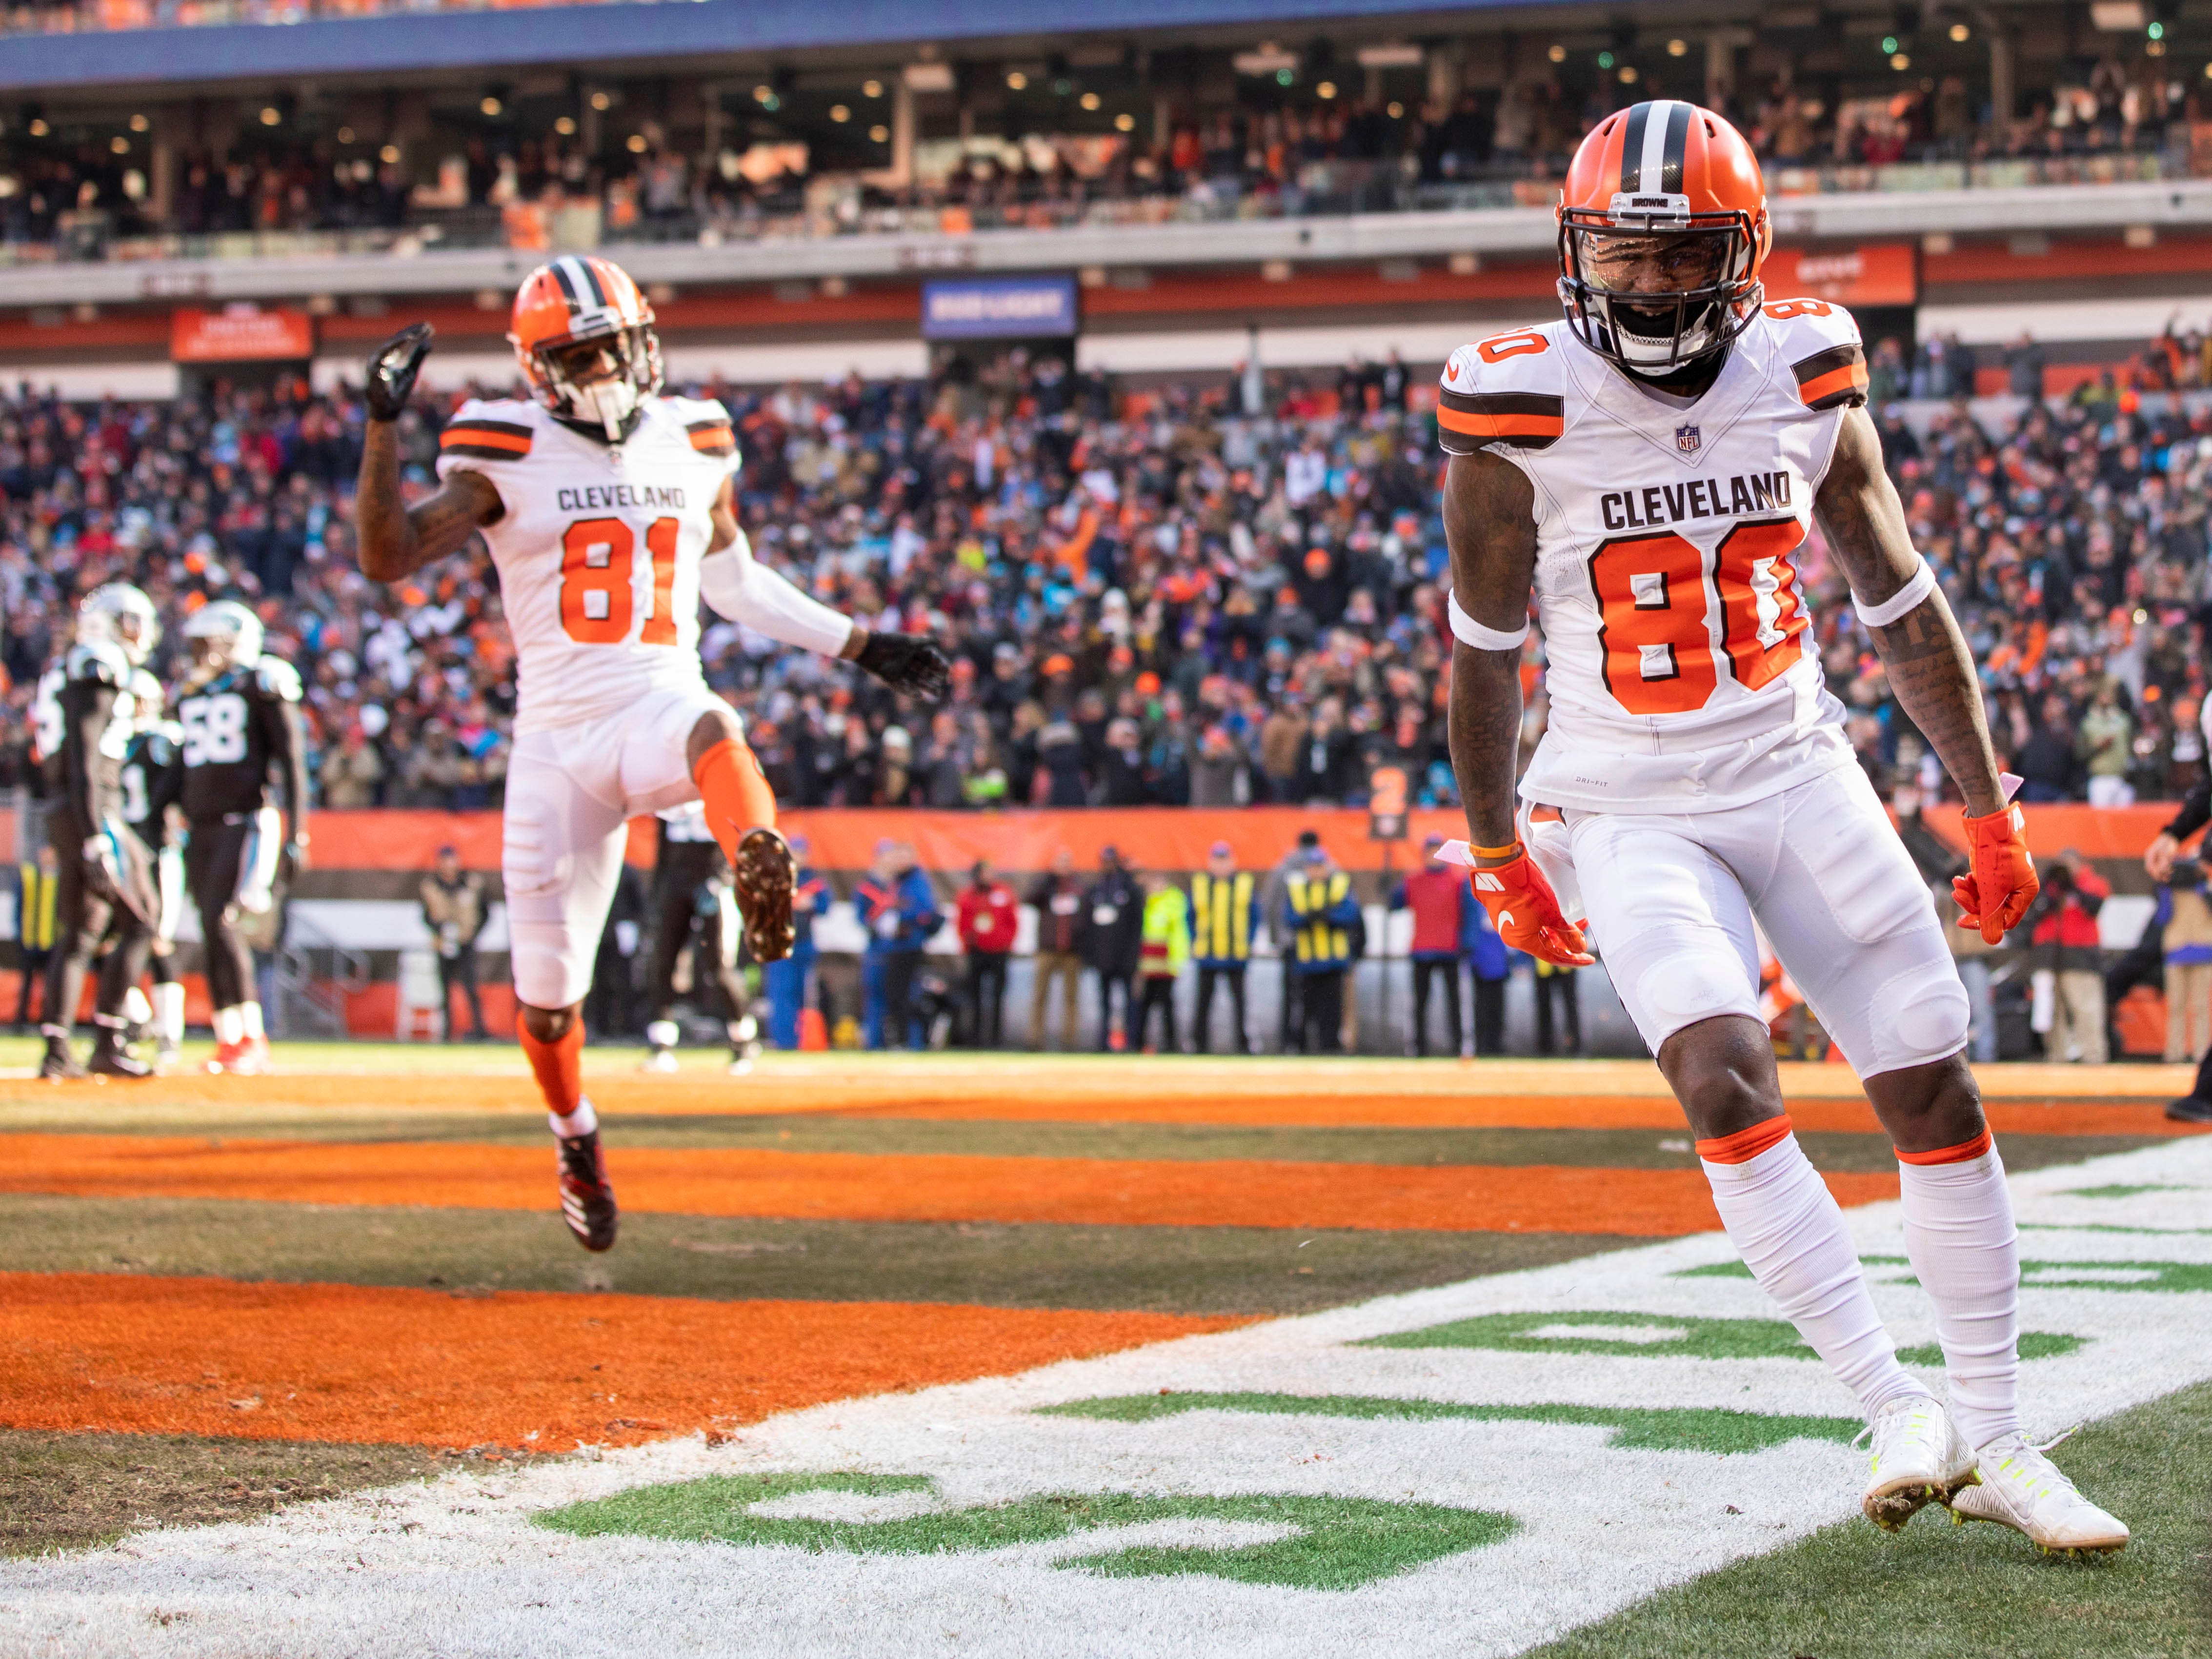 Browns wide receiver Jarvis Landry (80) celebrates after scoring a touchdown against the Panthers.